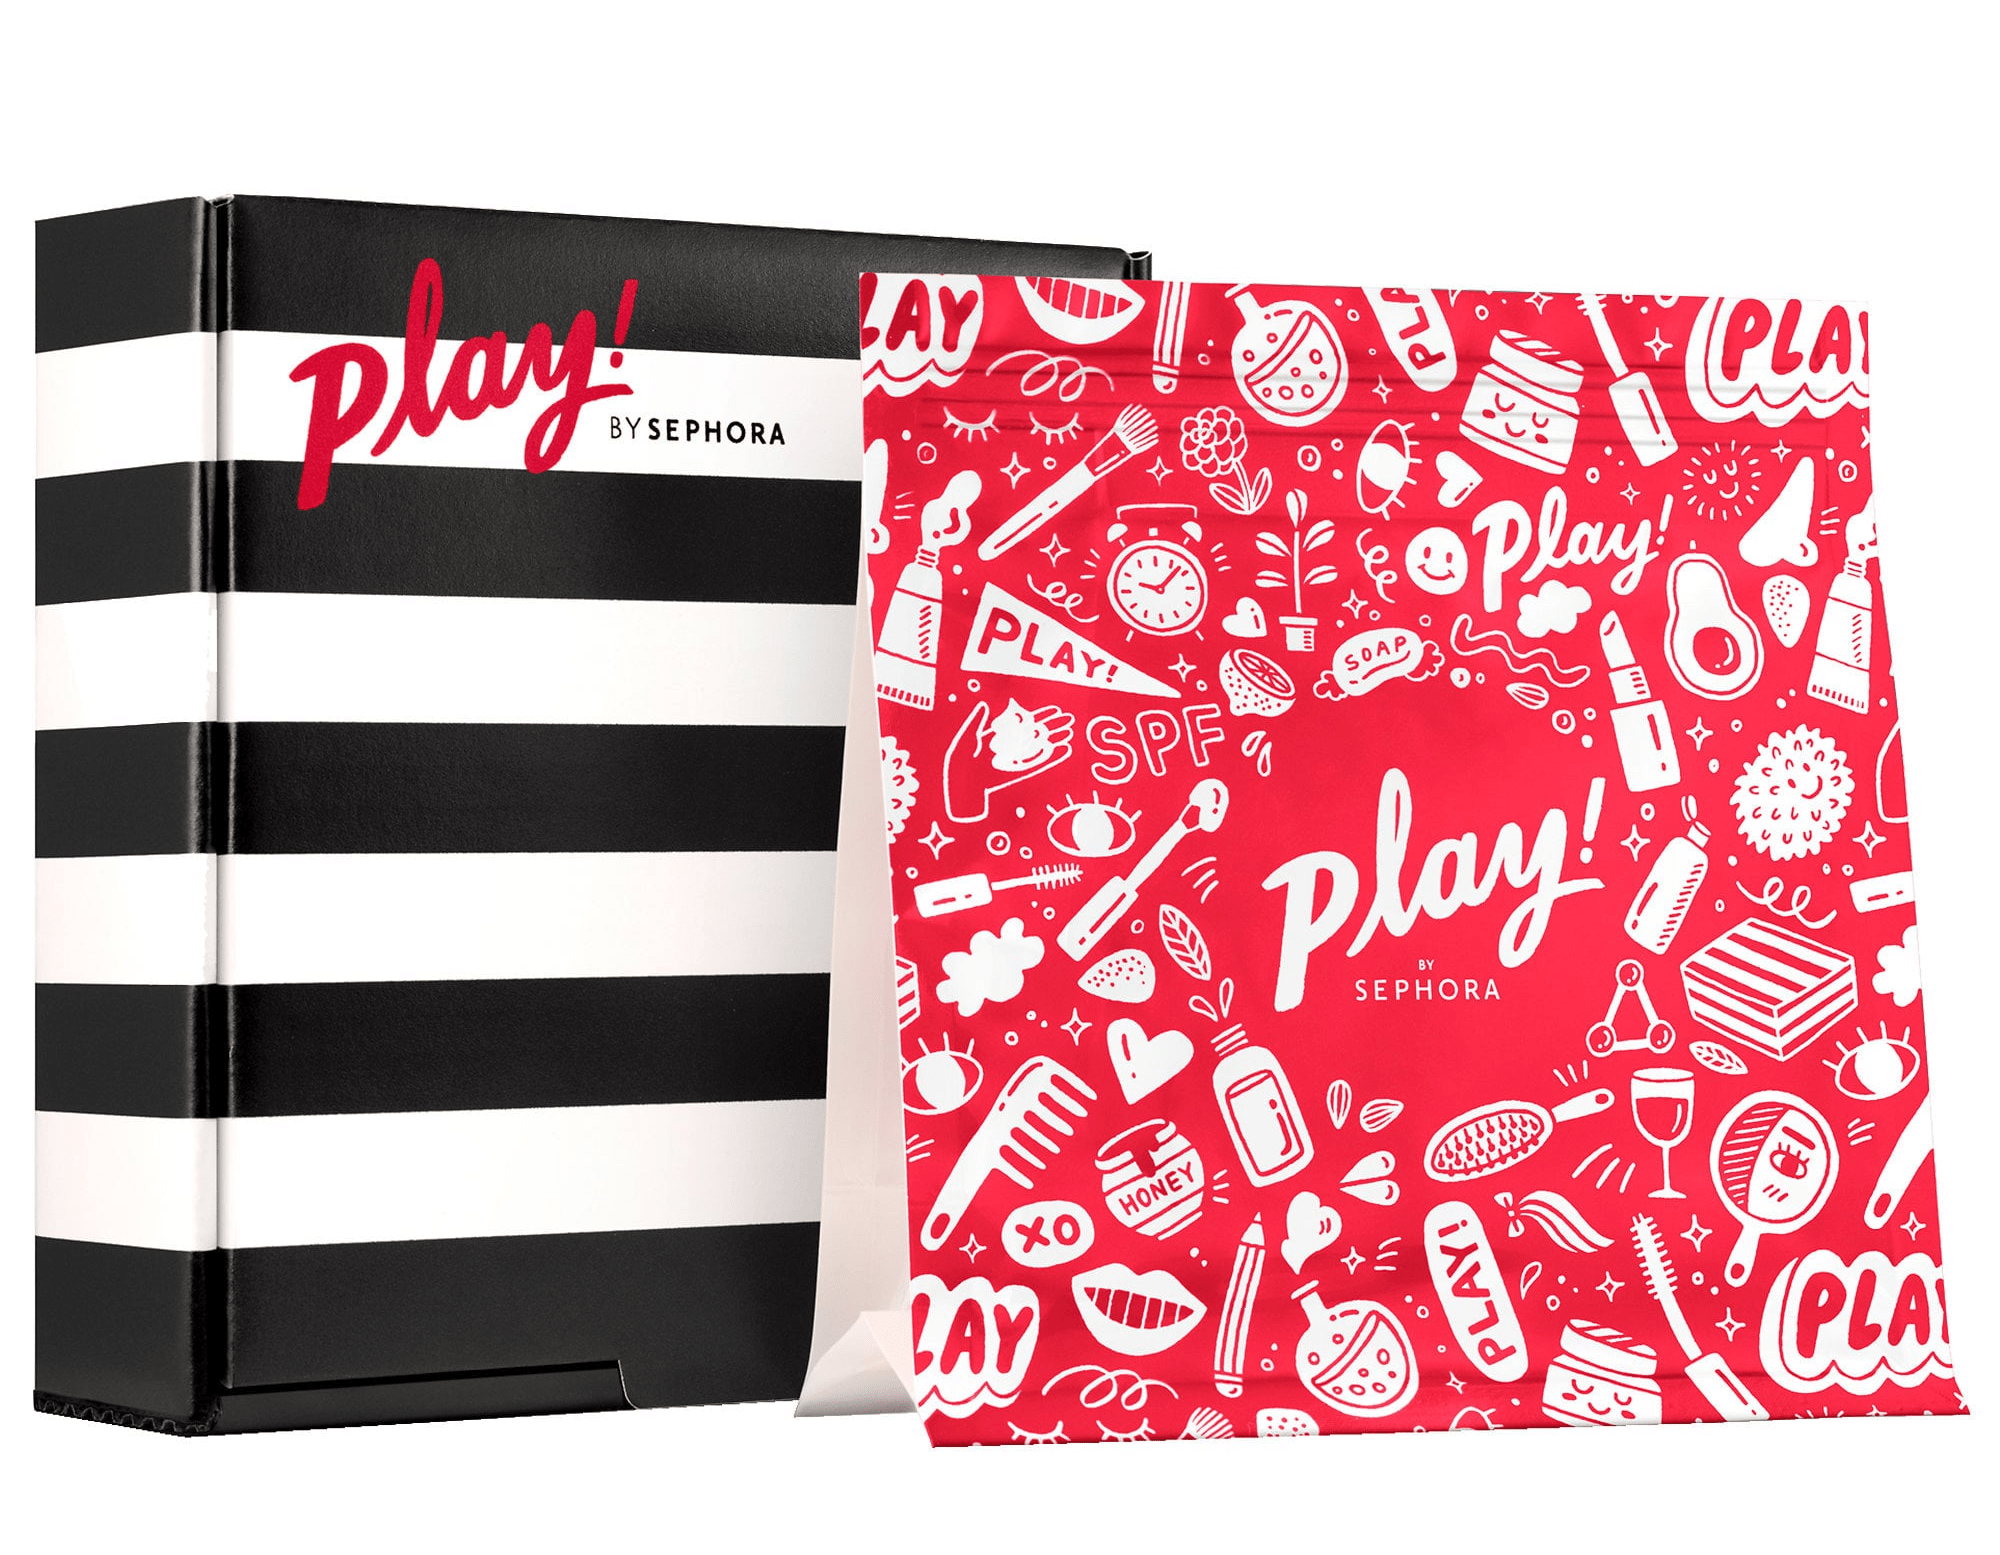 Play! by Sephora: Use September 2018 Play! Pass Online!